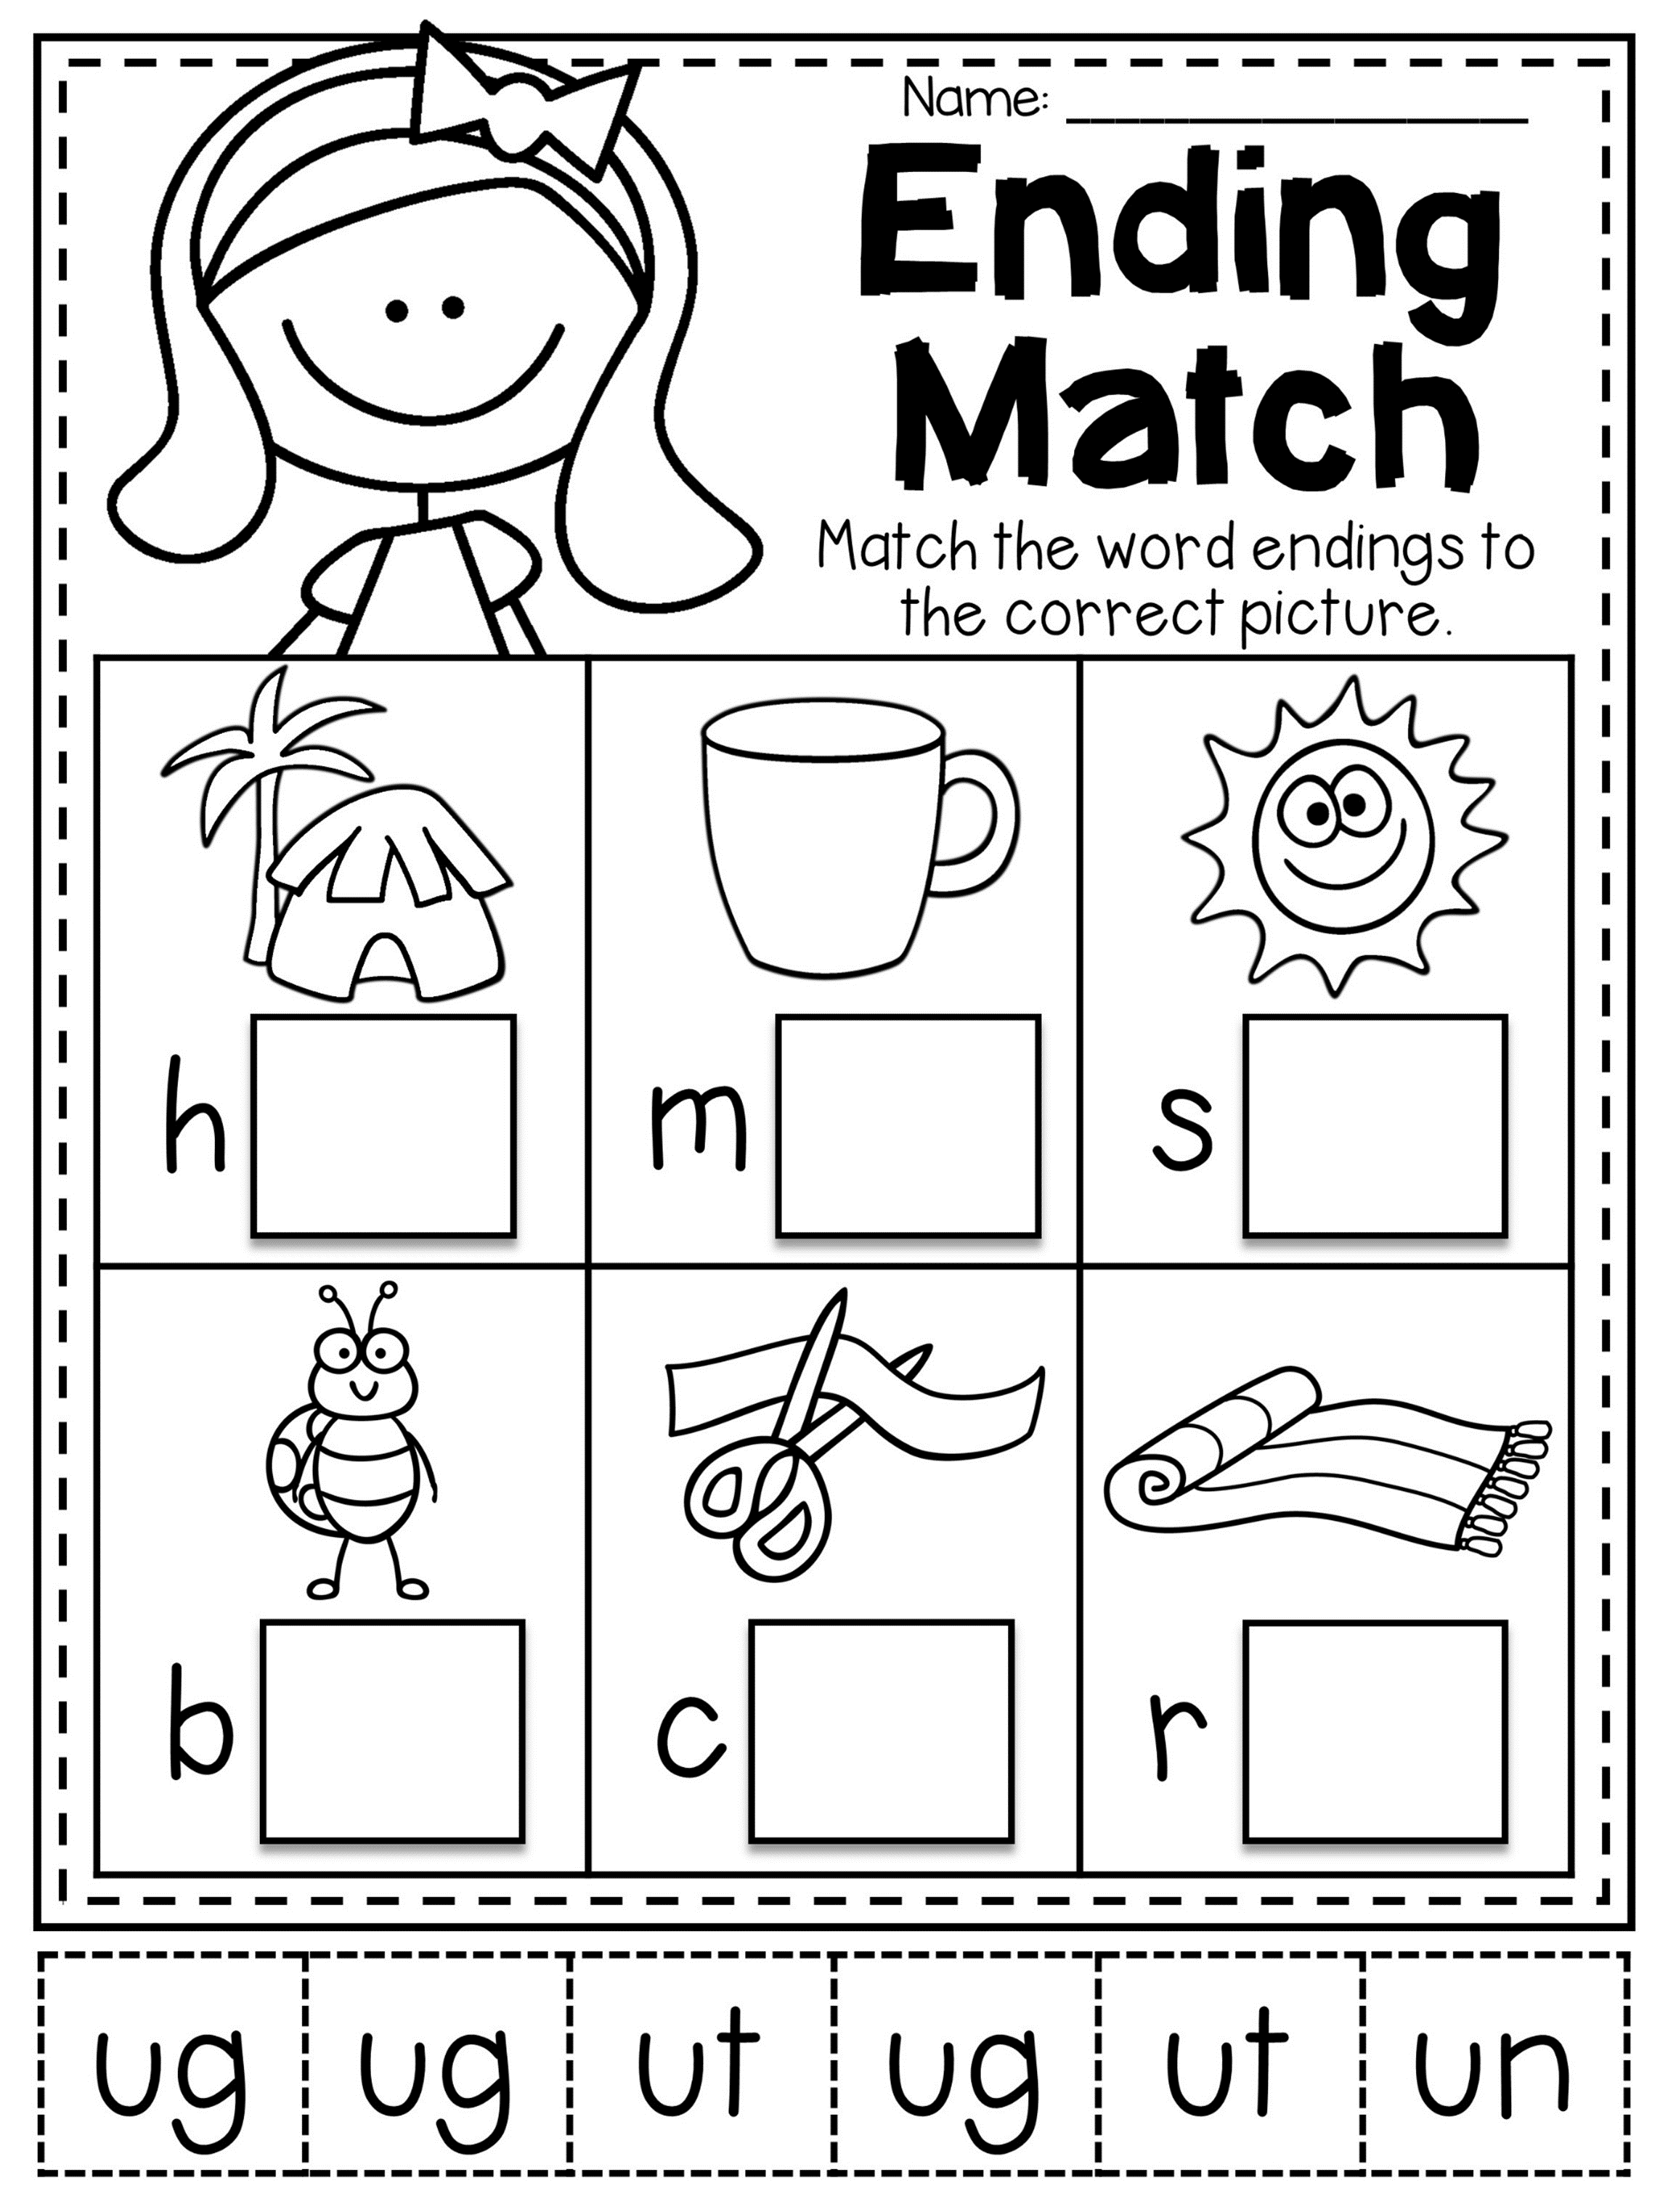 Pin On Preschool Activities